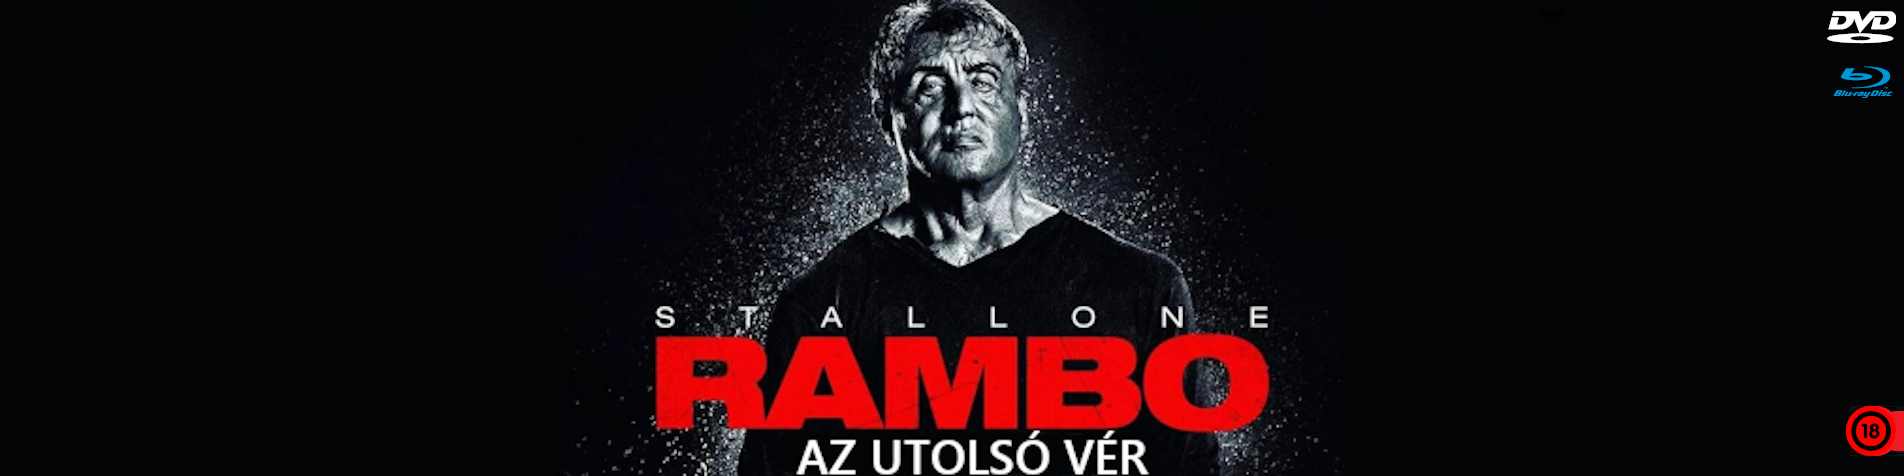 Rambo - Bluray